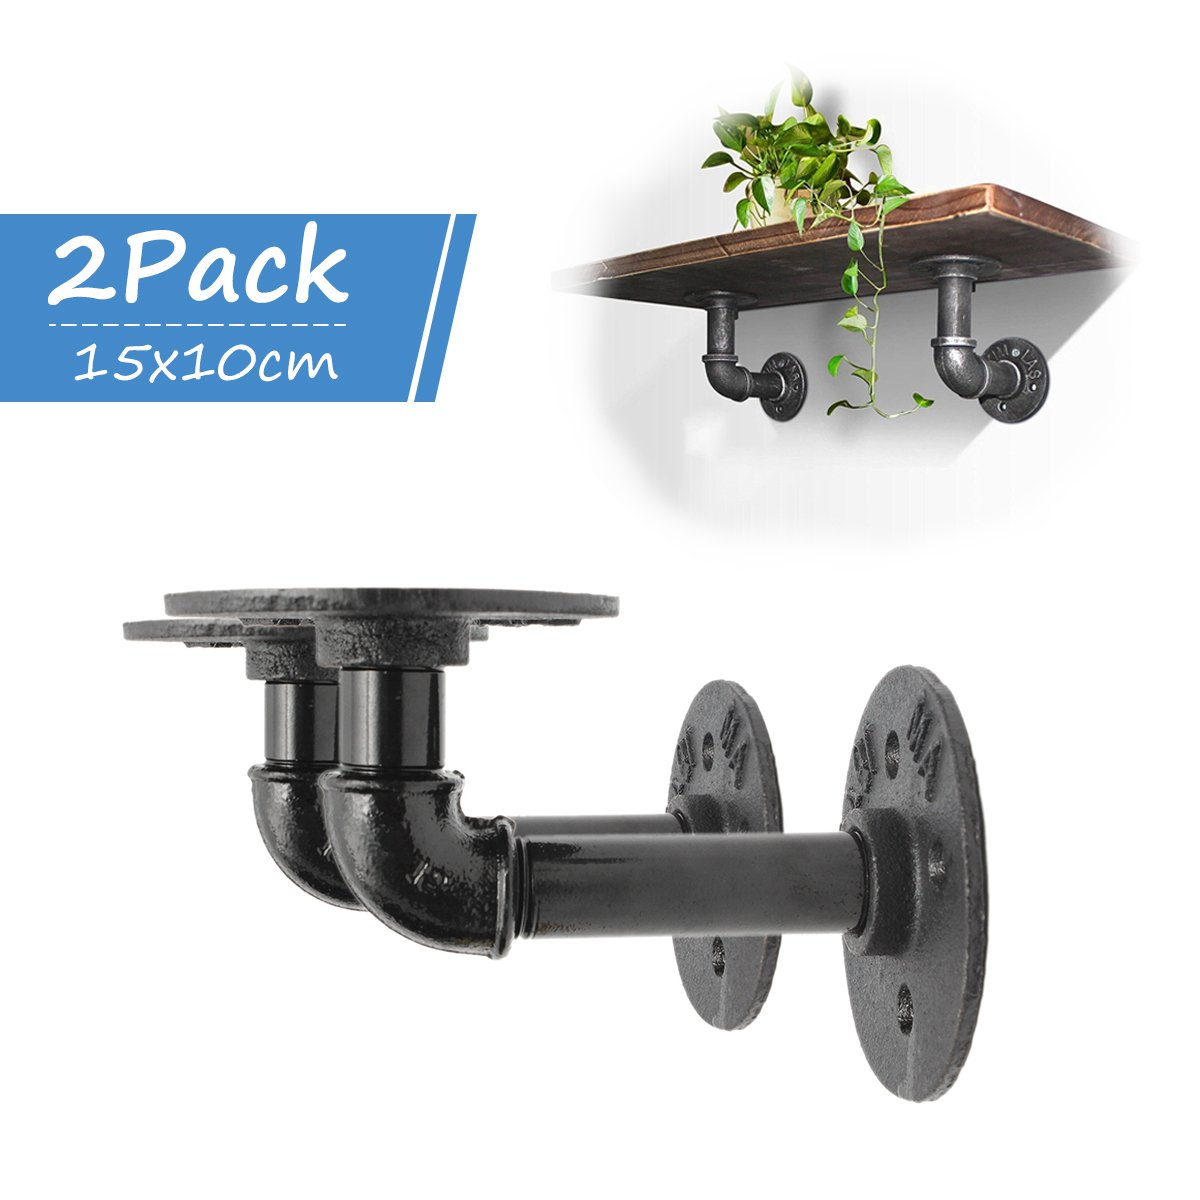 KINGSO 2Pcs Industrial Black Iron Pipe Bracket Wall Mounted Floating Shelf Hanging Wall Hardware Decor for Farmhouse Shelving Hardware Heavy Duty